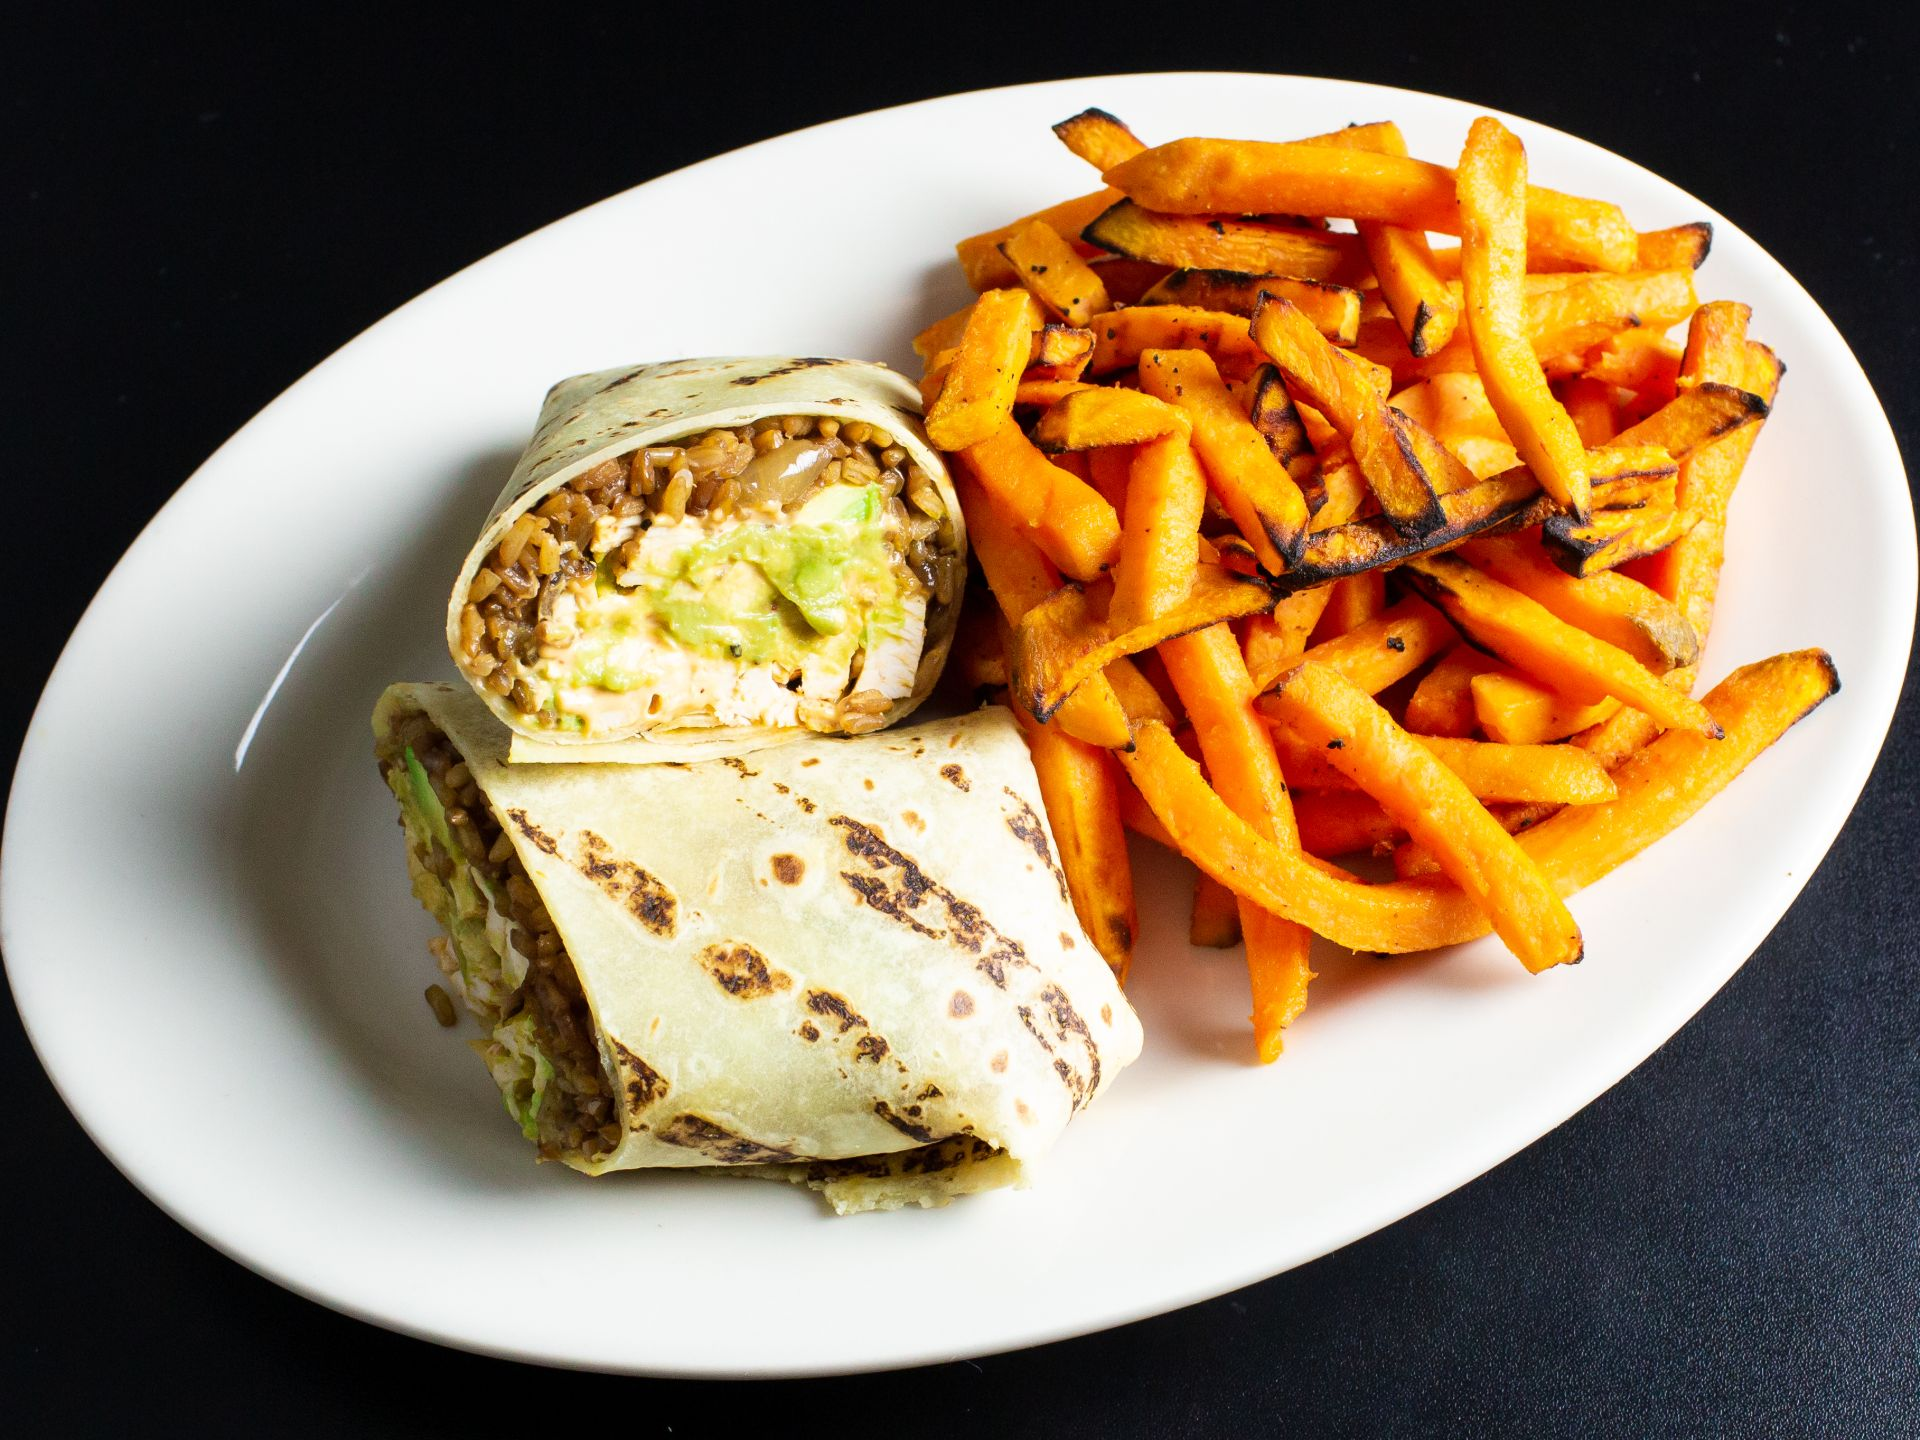 Grilled chicken burrito with avocado and beans and a side of sweet potato fries